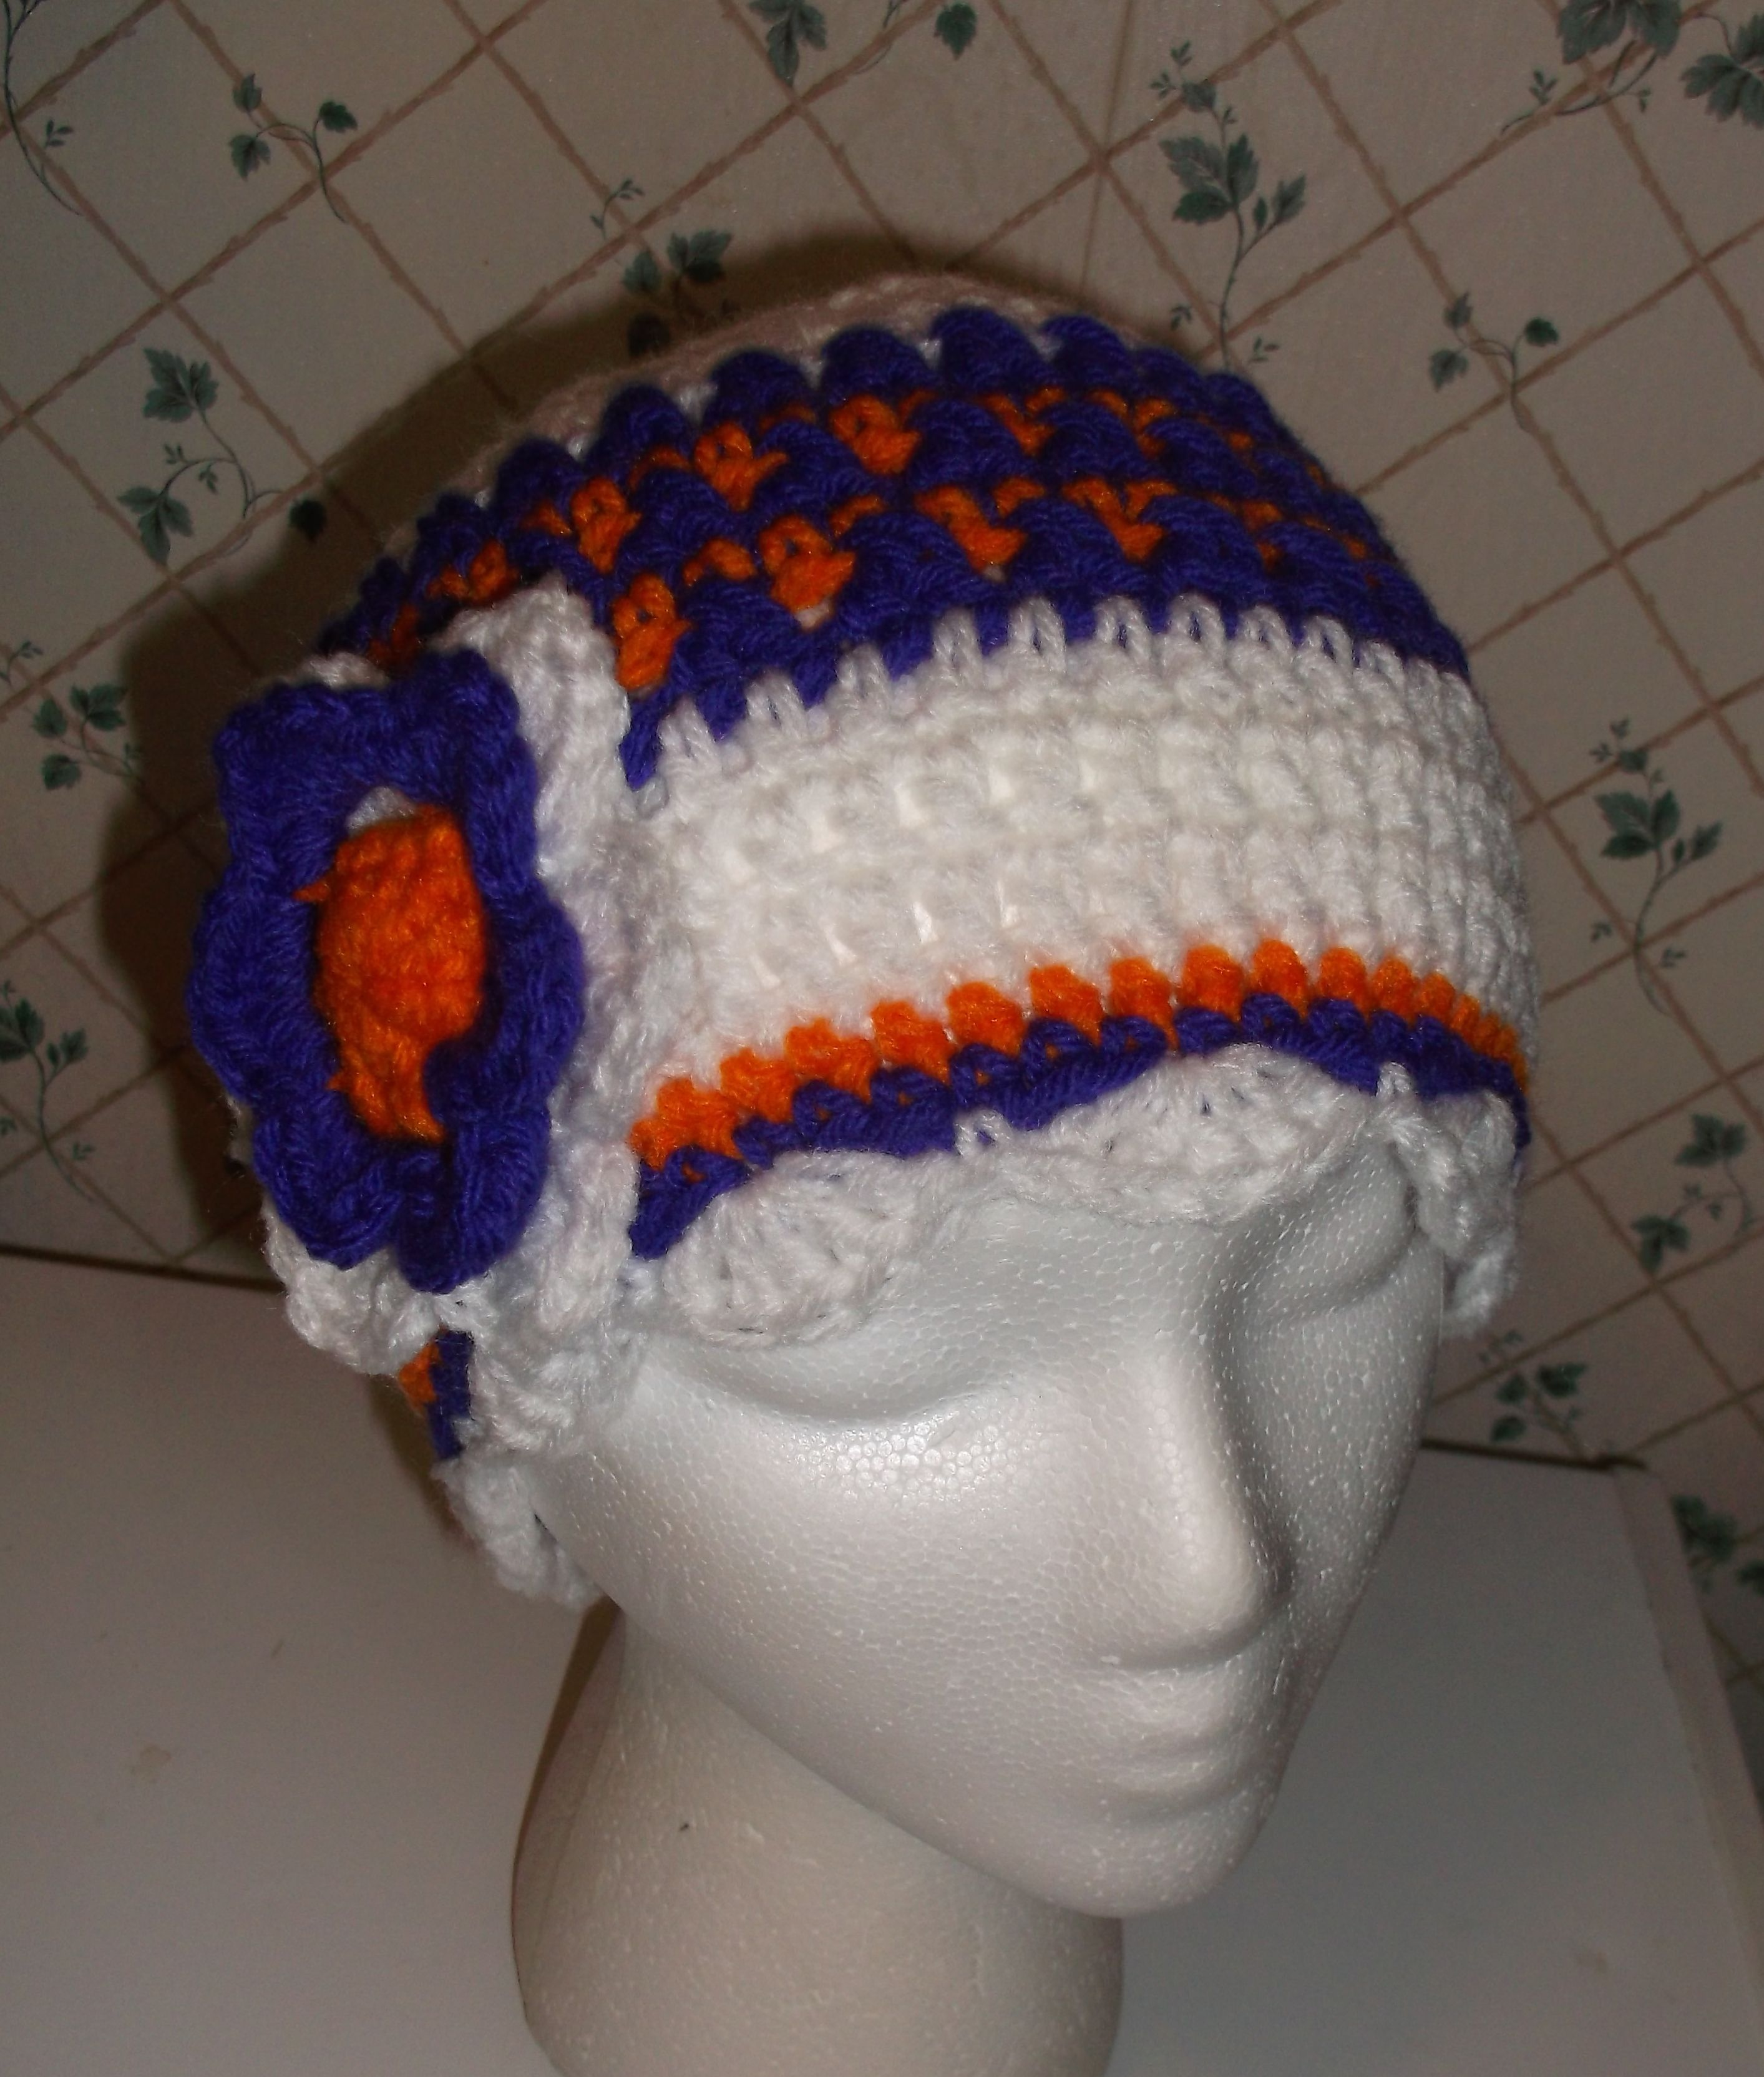 Crochet hat with flower clemson colors no pattern crochet crochet hat with flower clemson colors no pattern bankloansurffo Choice Image